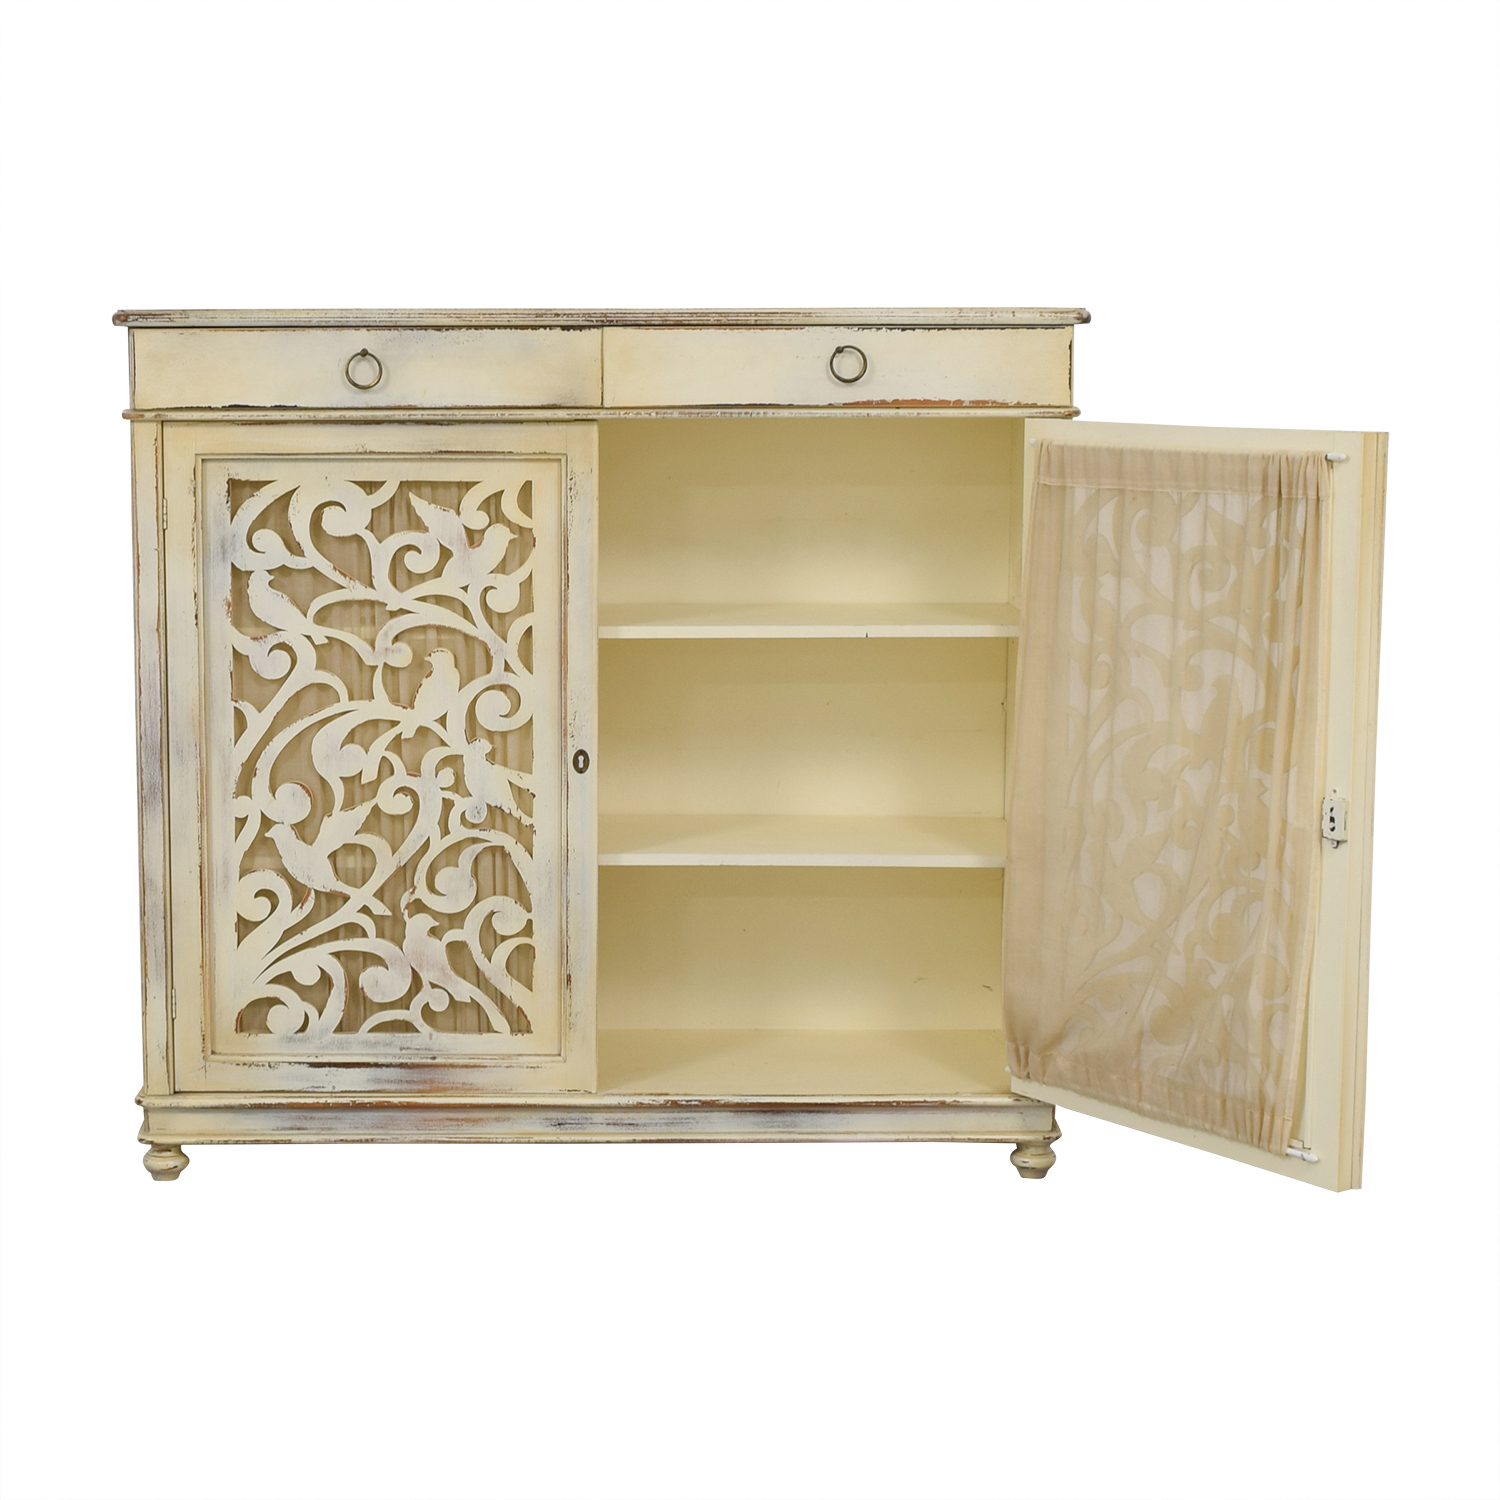 buy Buying & Design Antique Distressed White Cabinet Buying & Design Cabinets & Sideboards